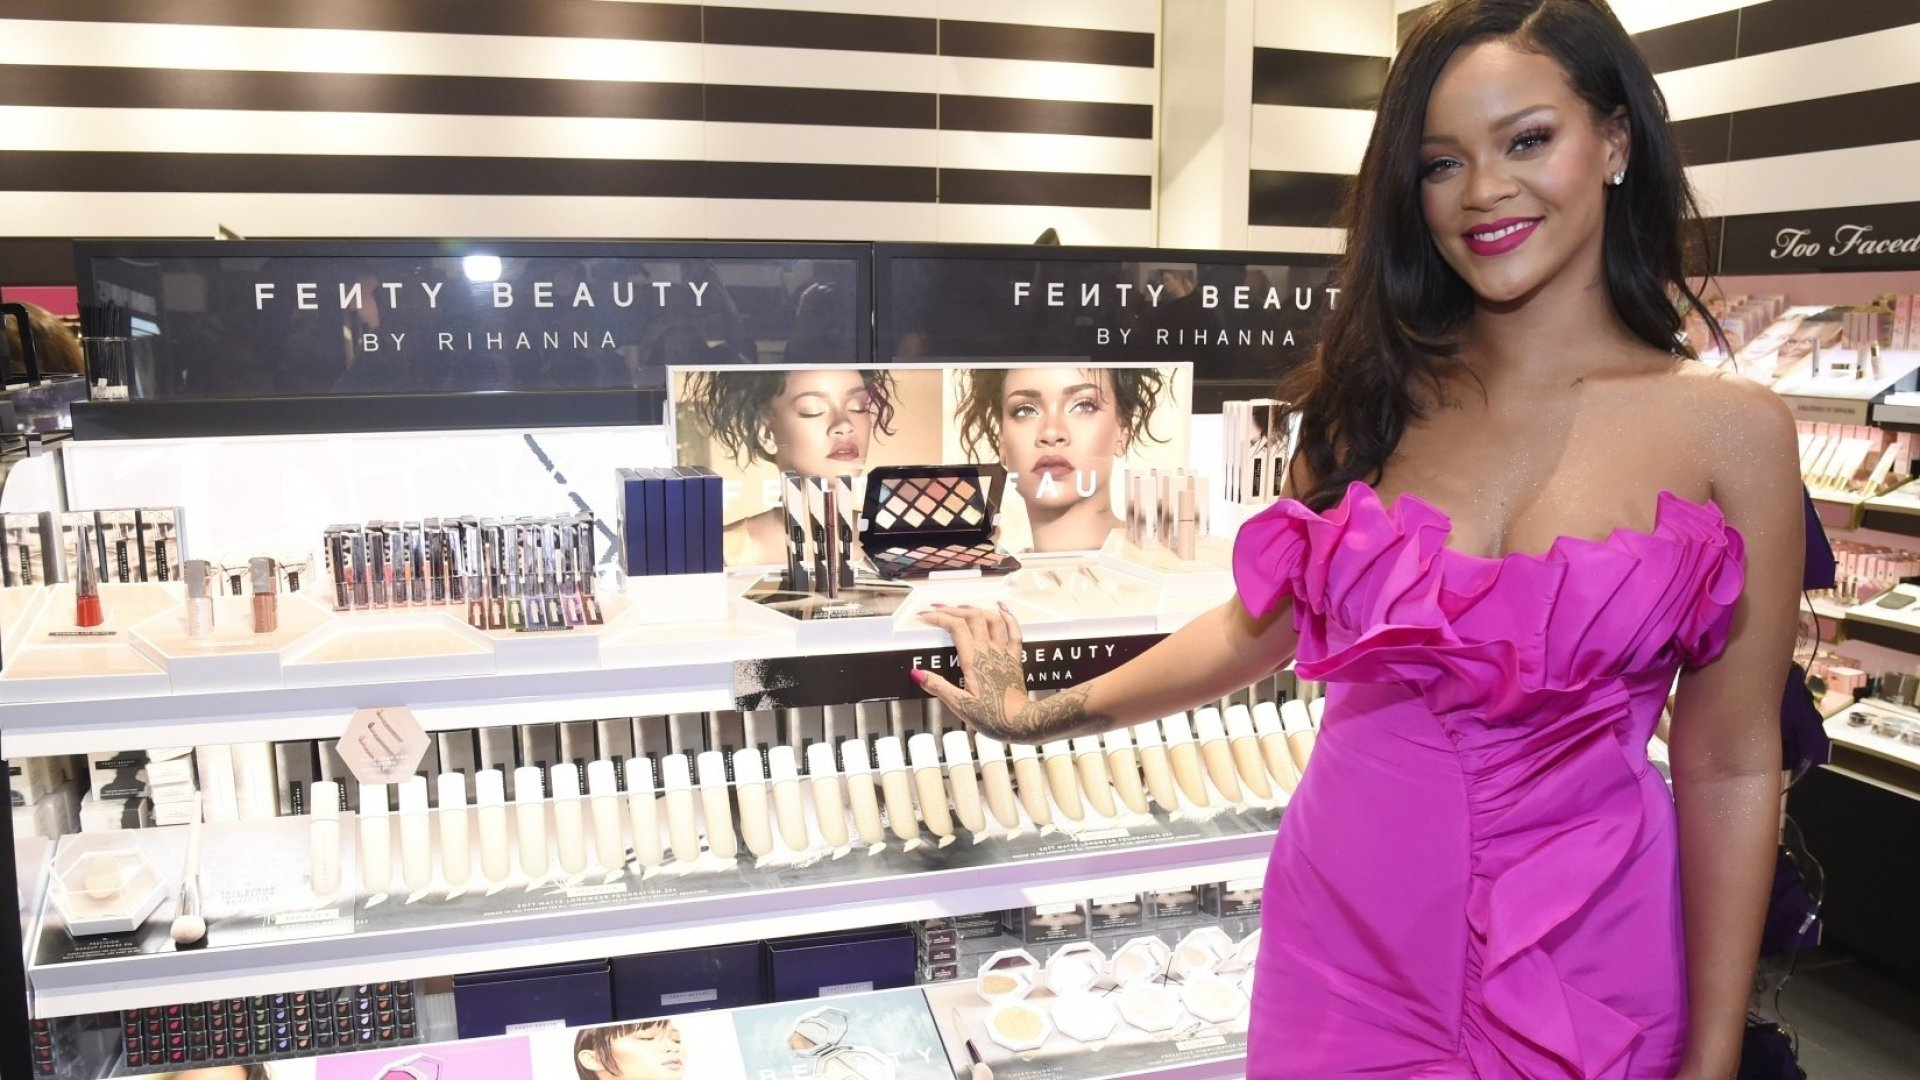 Rihanna Was Just Named the World's Richest Female Musician. Here's the Simple Scheduling Trick She Uses to Juggle It All